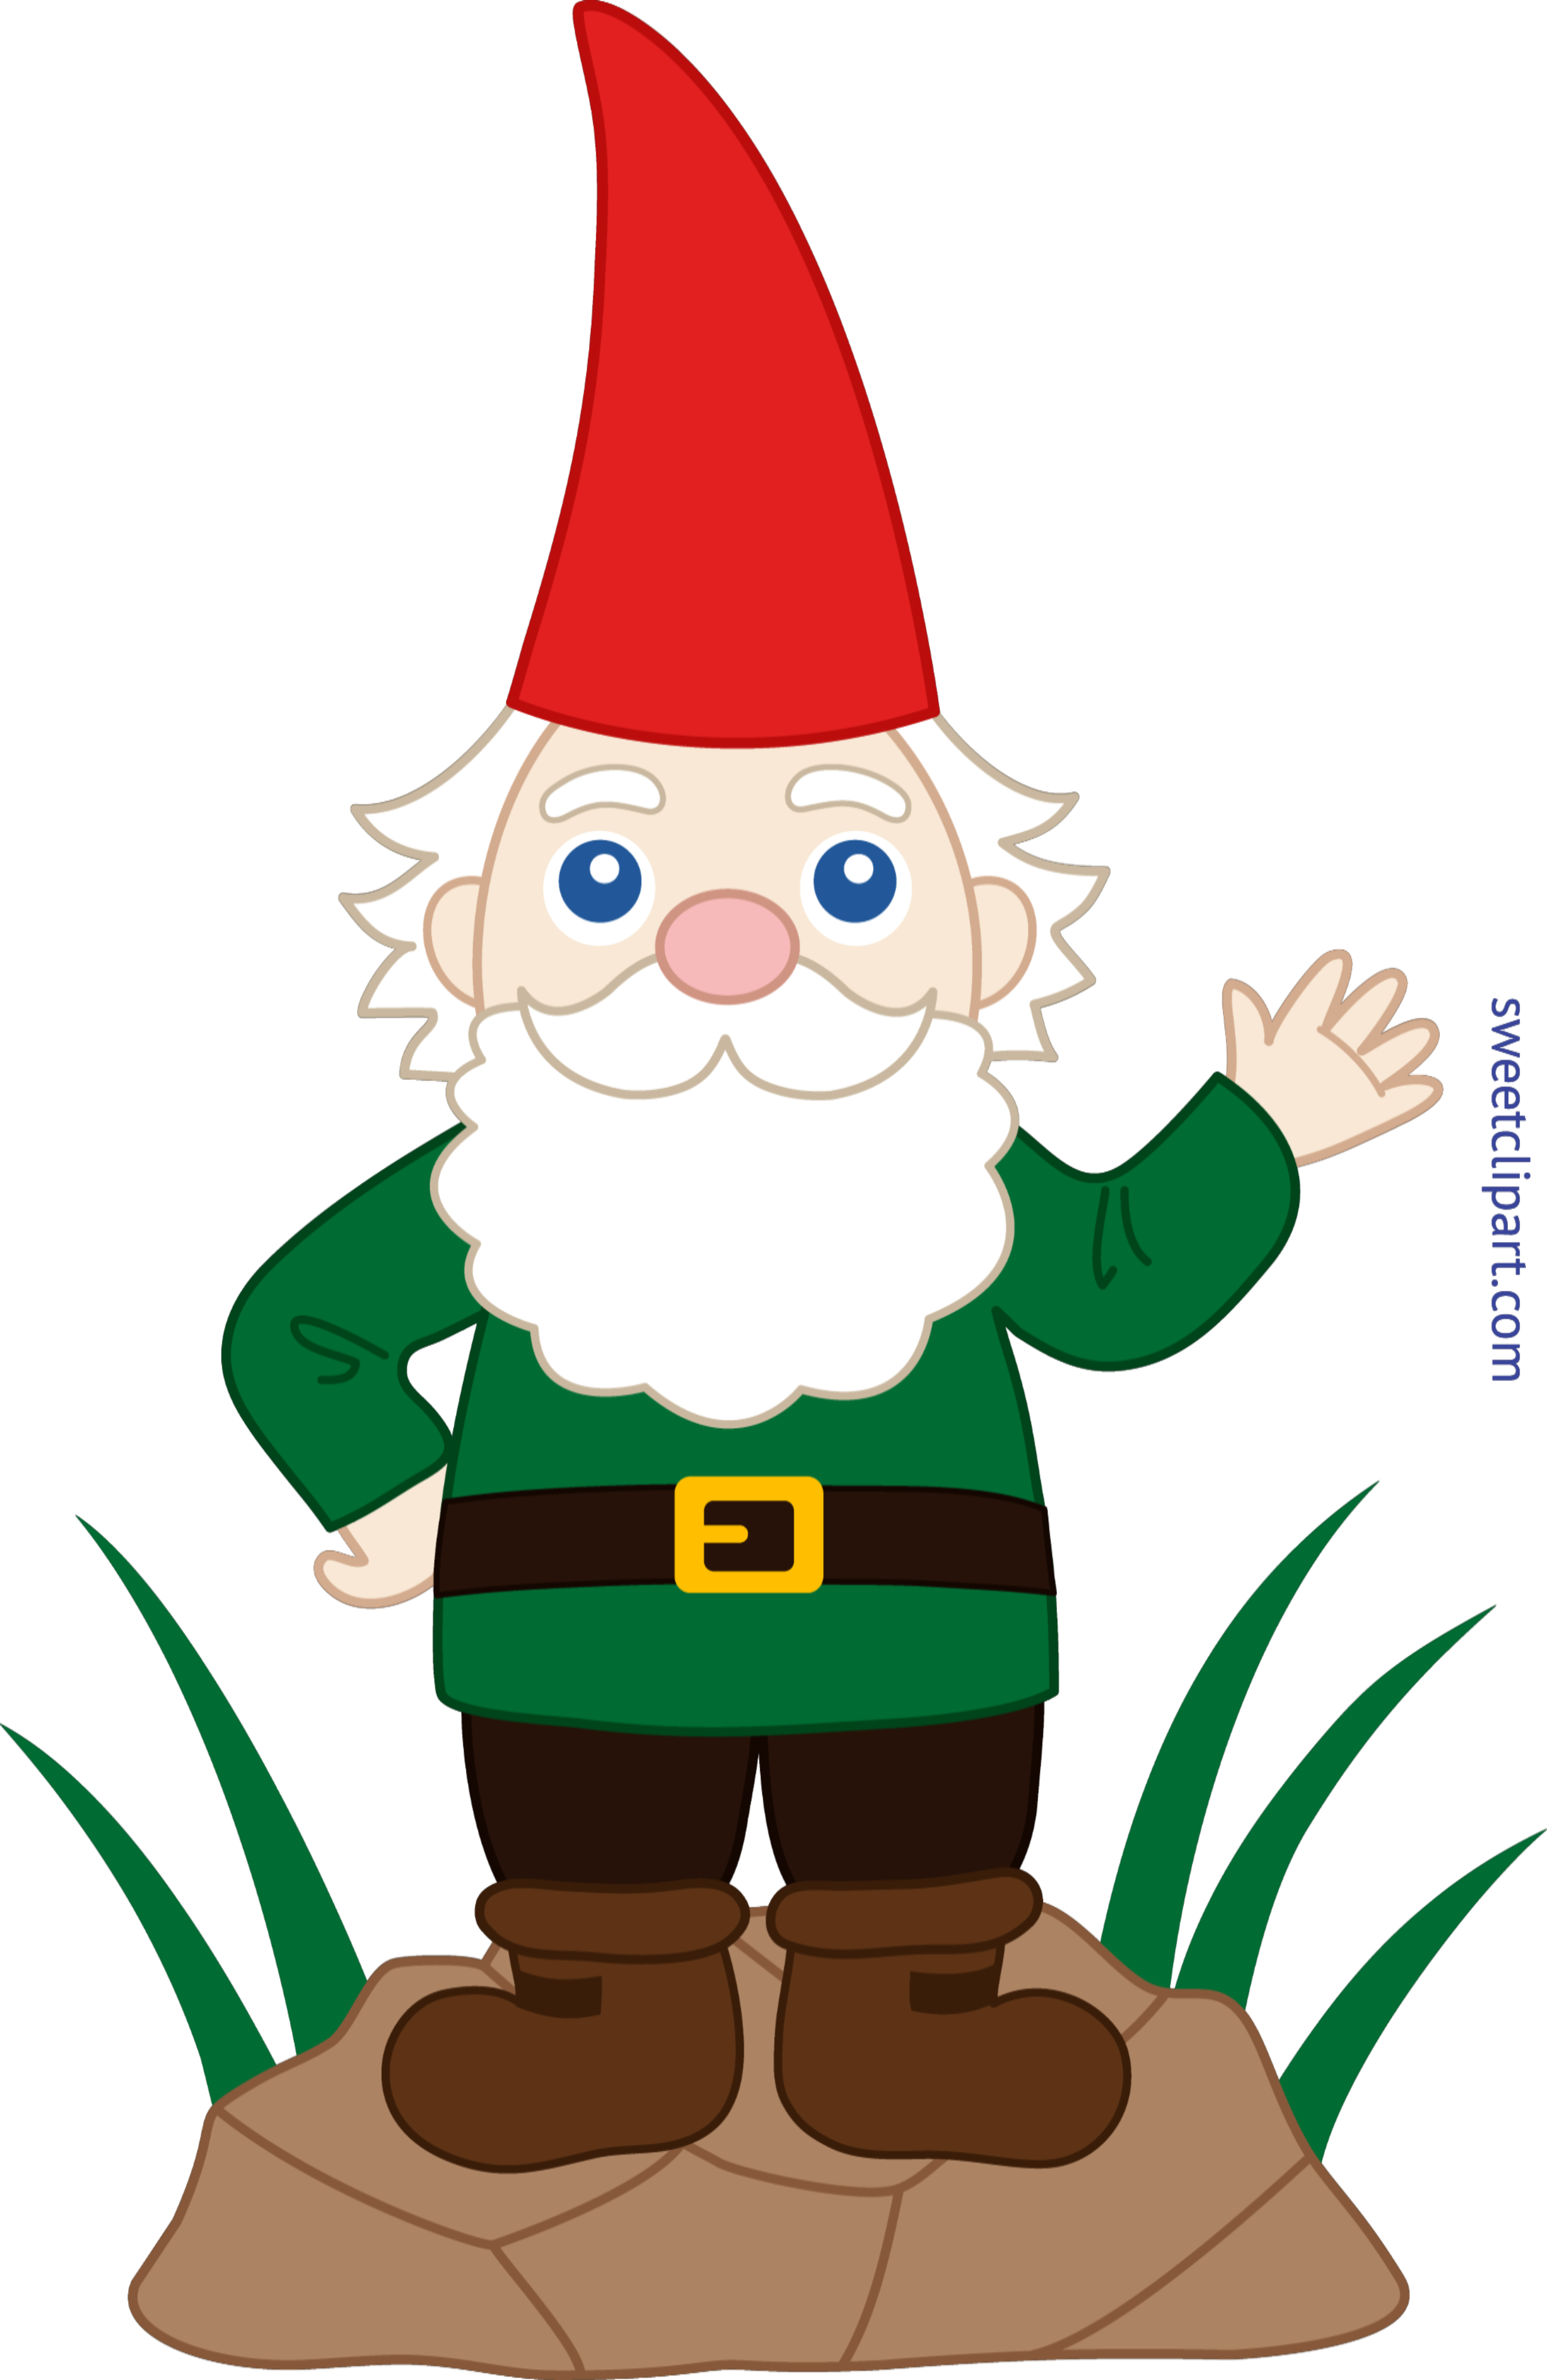 garden gnome clip art sweet clip art rh m sweetclipart com gnome clip art black and white gnome clipart black and white